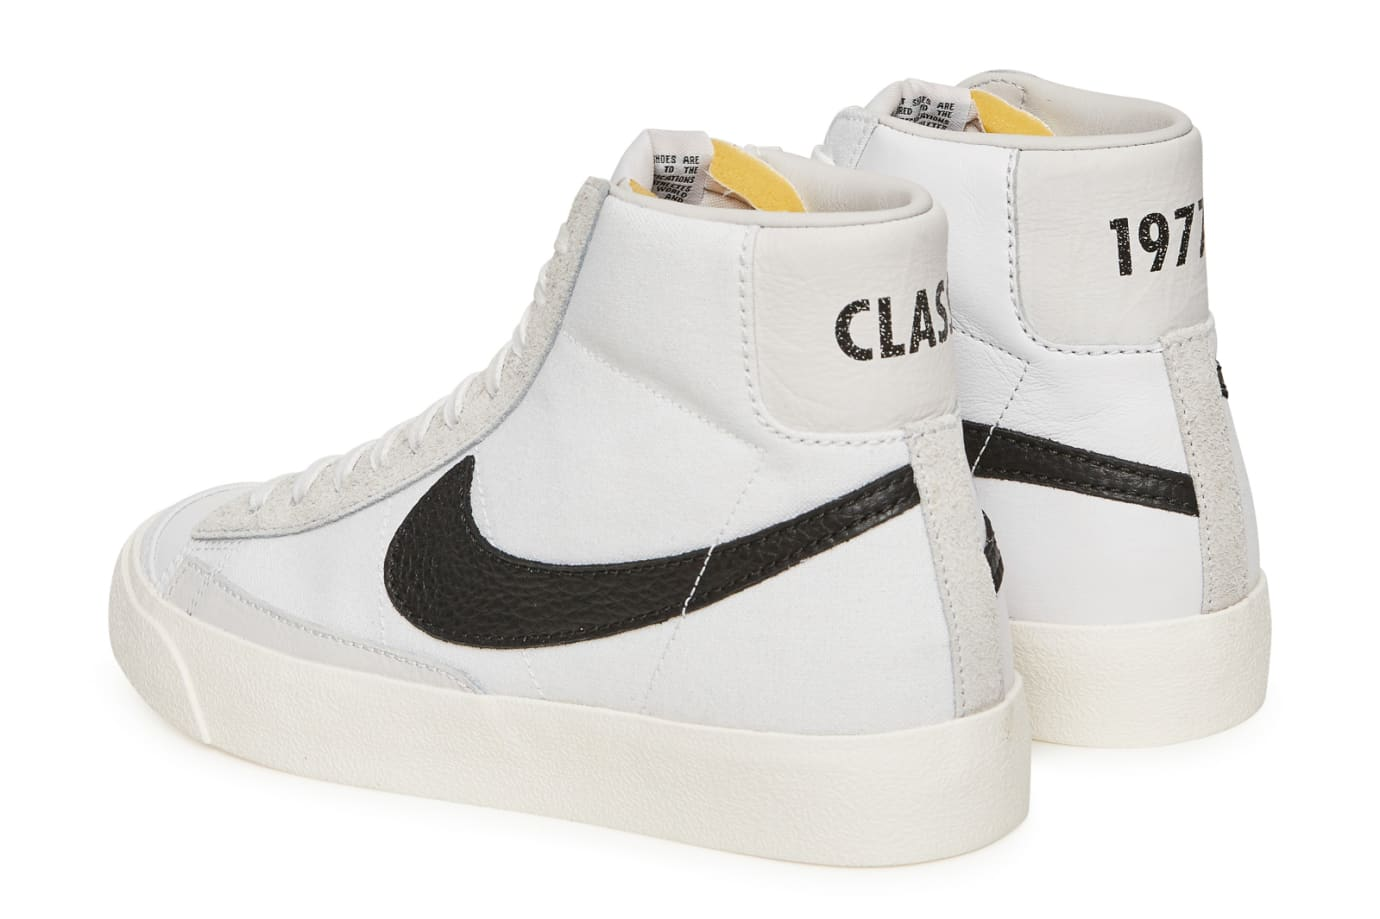 no sale tax 100% top quality best wholesaler Slam Jam x Nike Blazer Mid 'Class 1977' Release Date | Sole ...